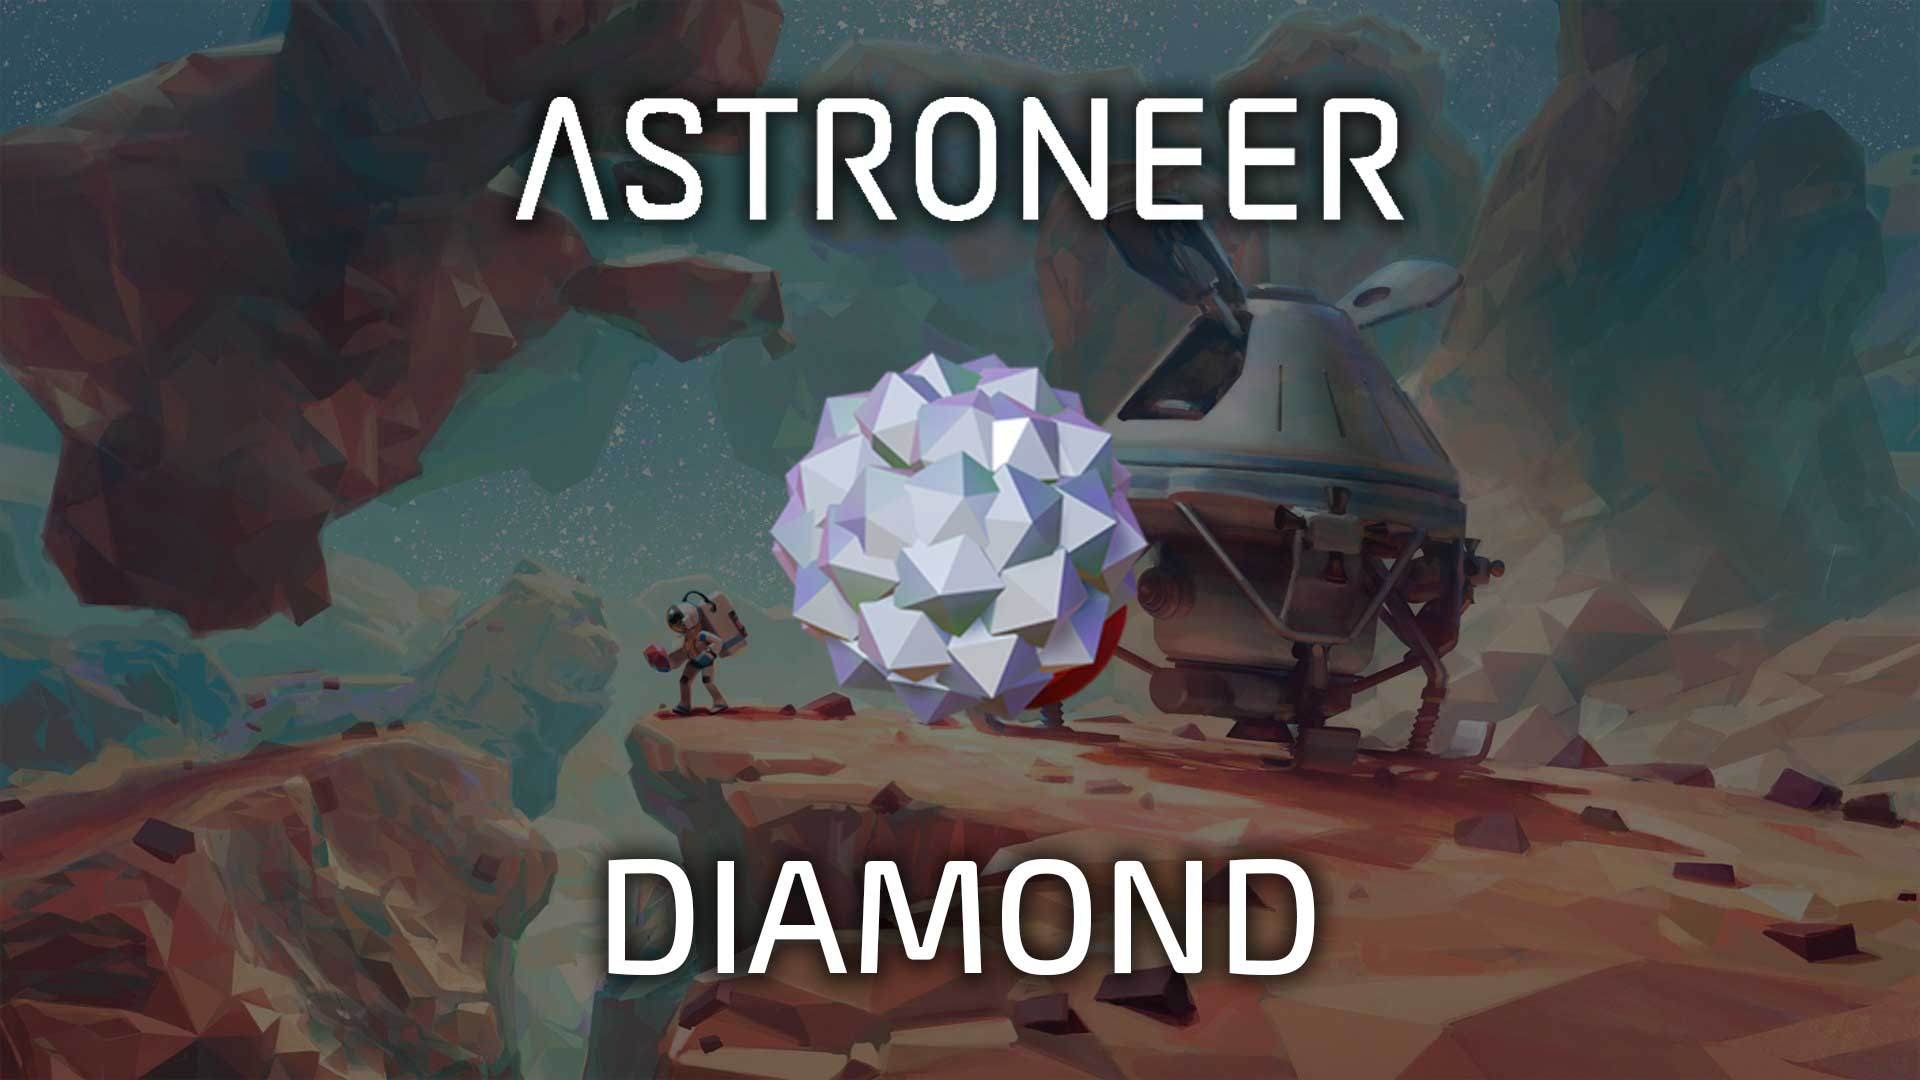 astroneer diamond